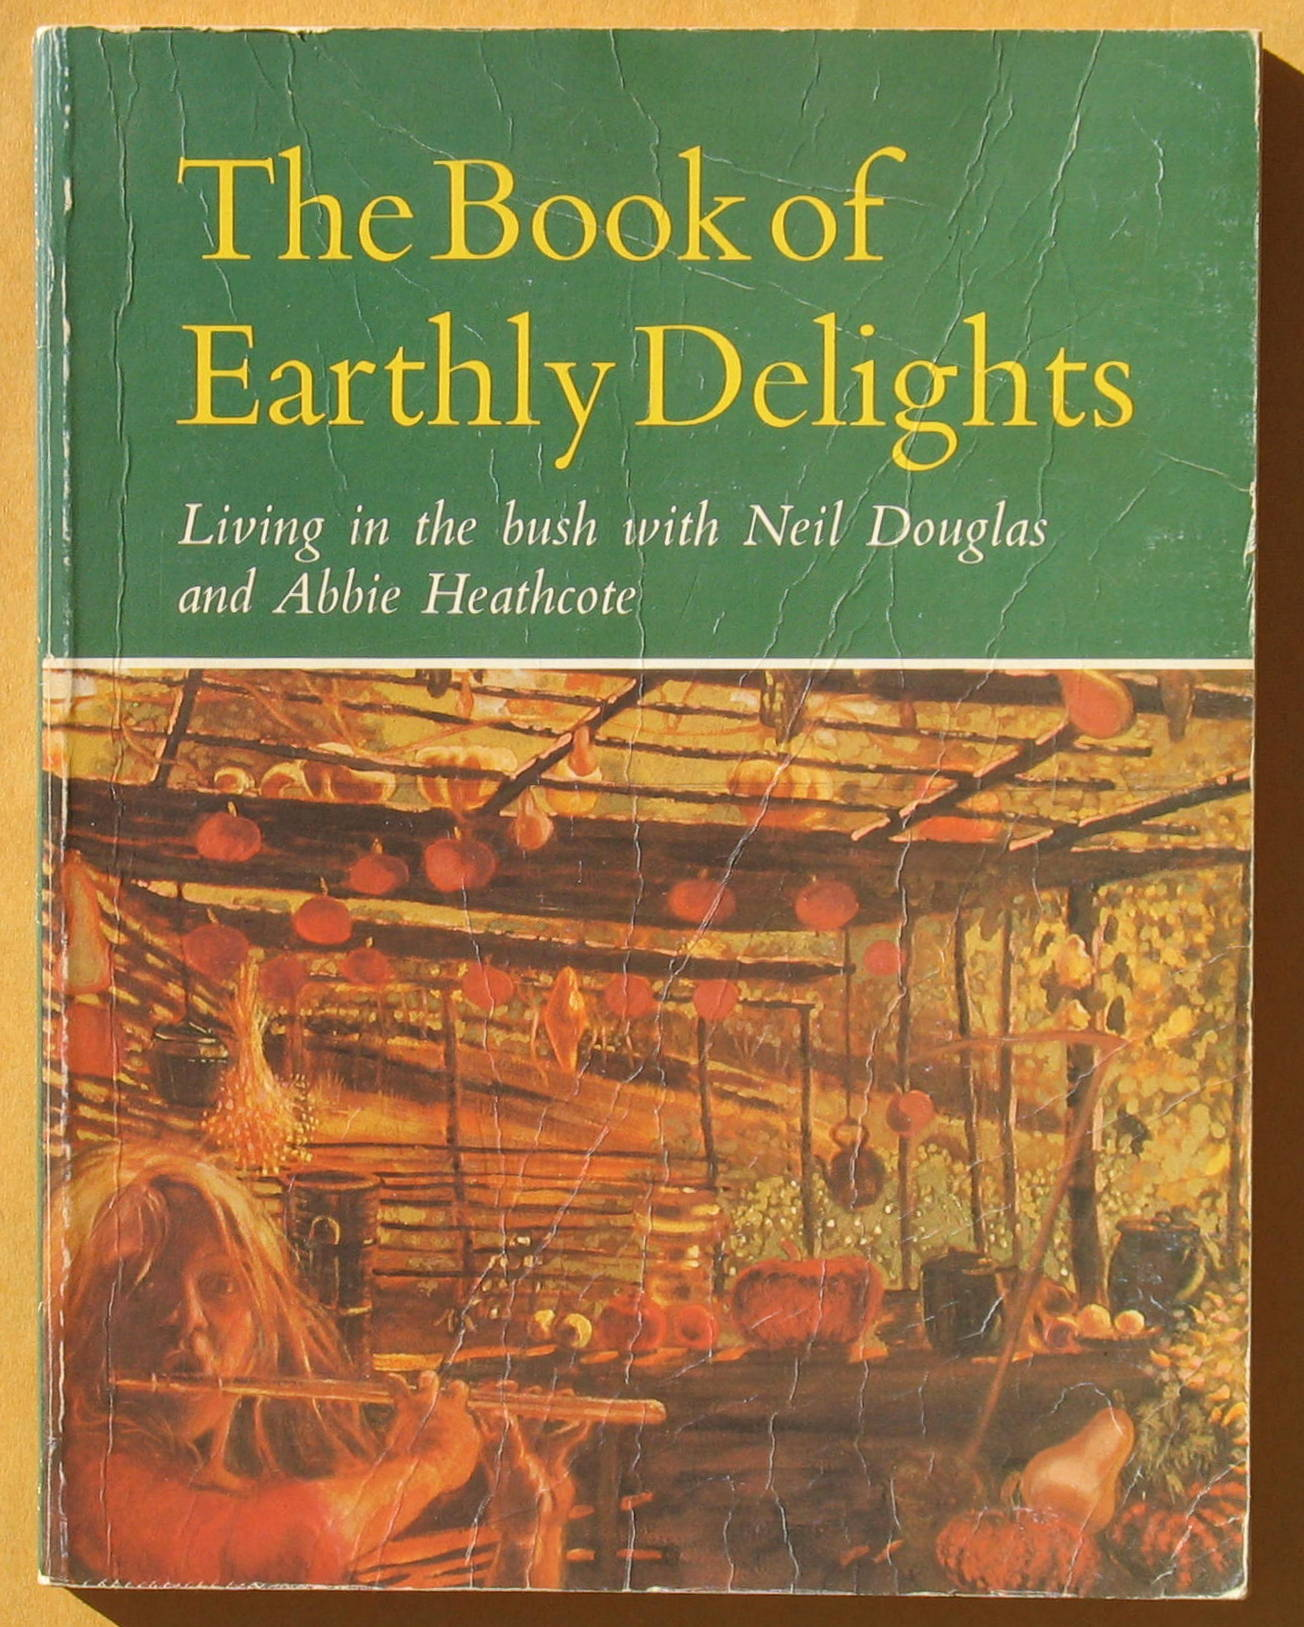 Image for The Book of Earthly Delights: Living in the Bush with Neil Douglas and Abbie Heathcote